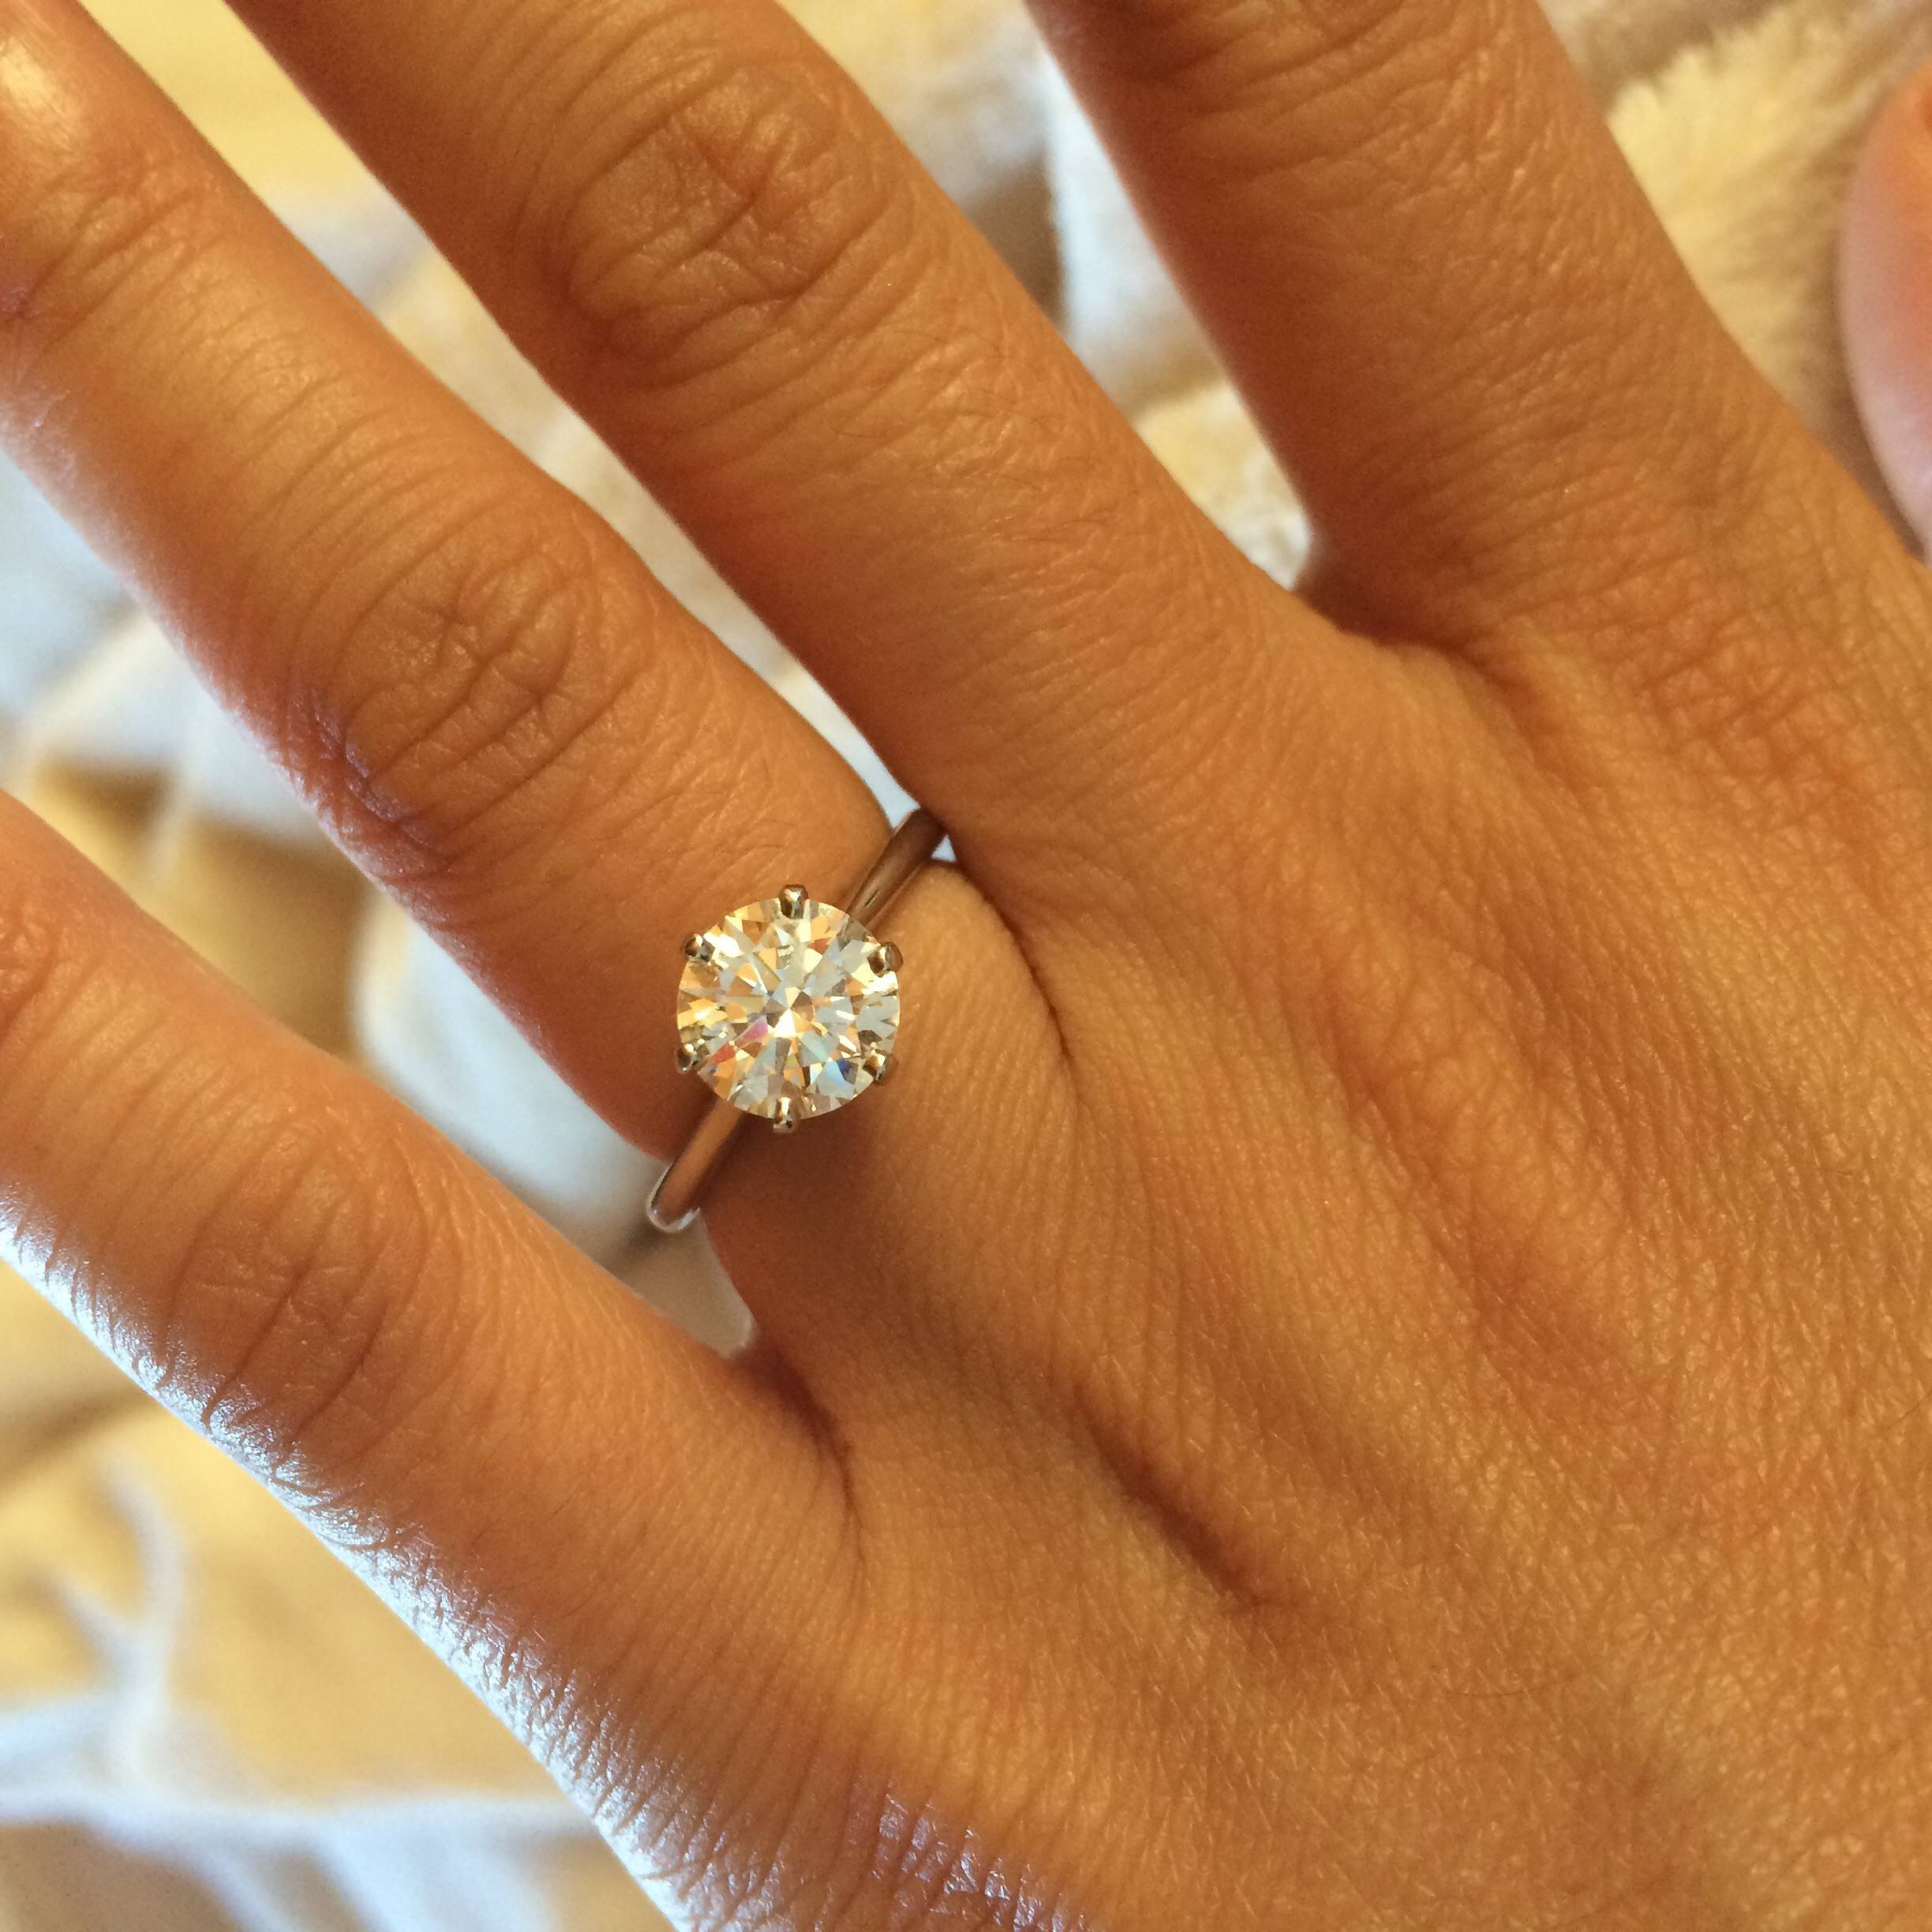 Need To See Some Size 4 Fingers With Engagement Rings Within Size 4 Diamond Engagement Rings (View 5 of 15)